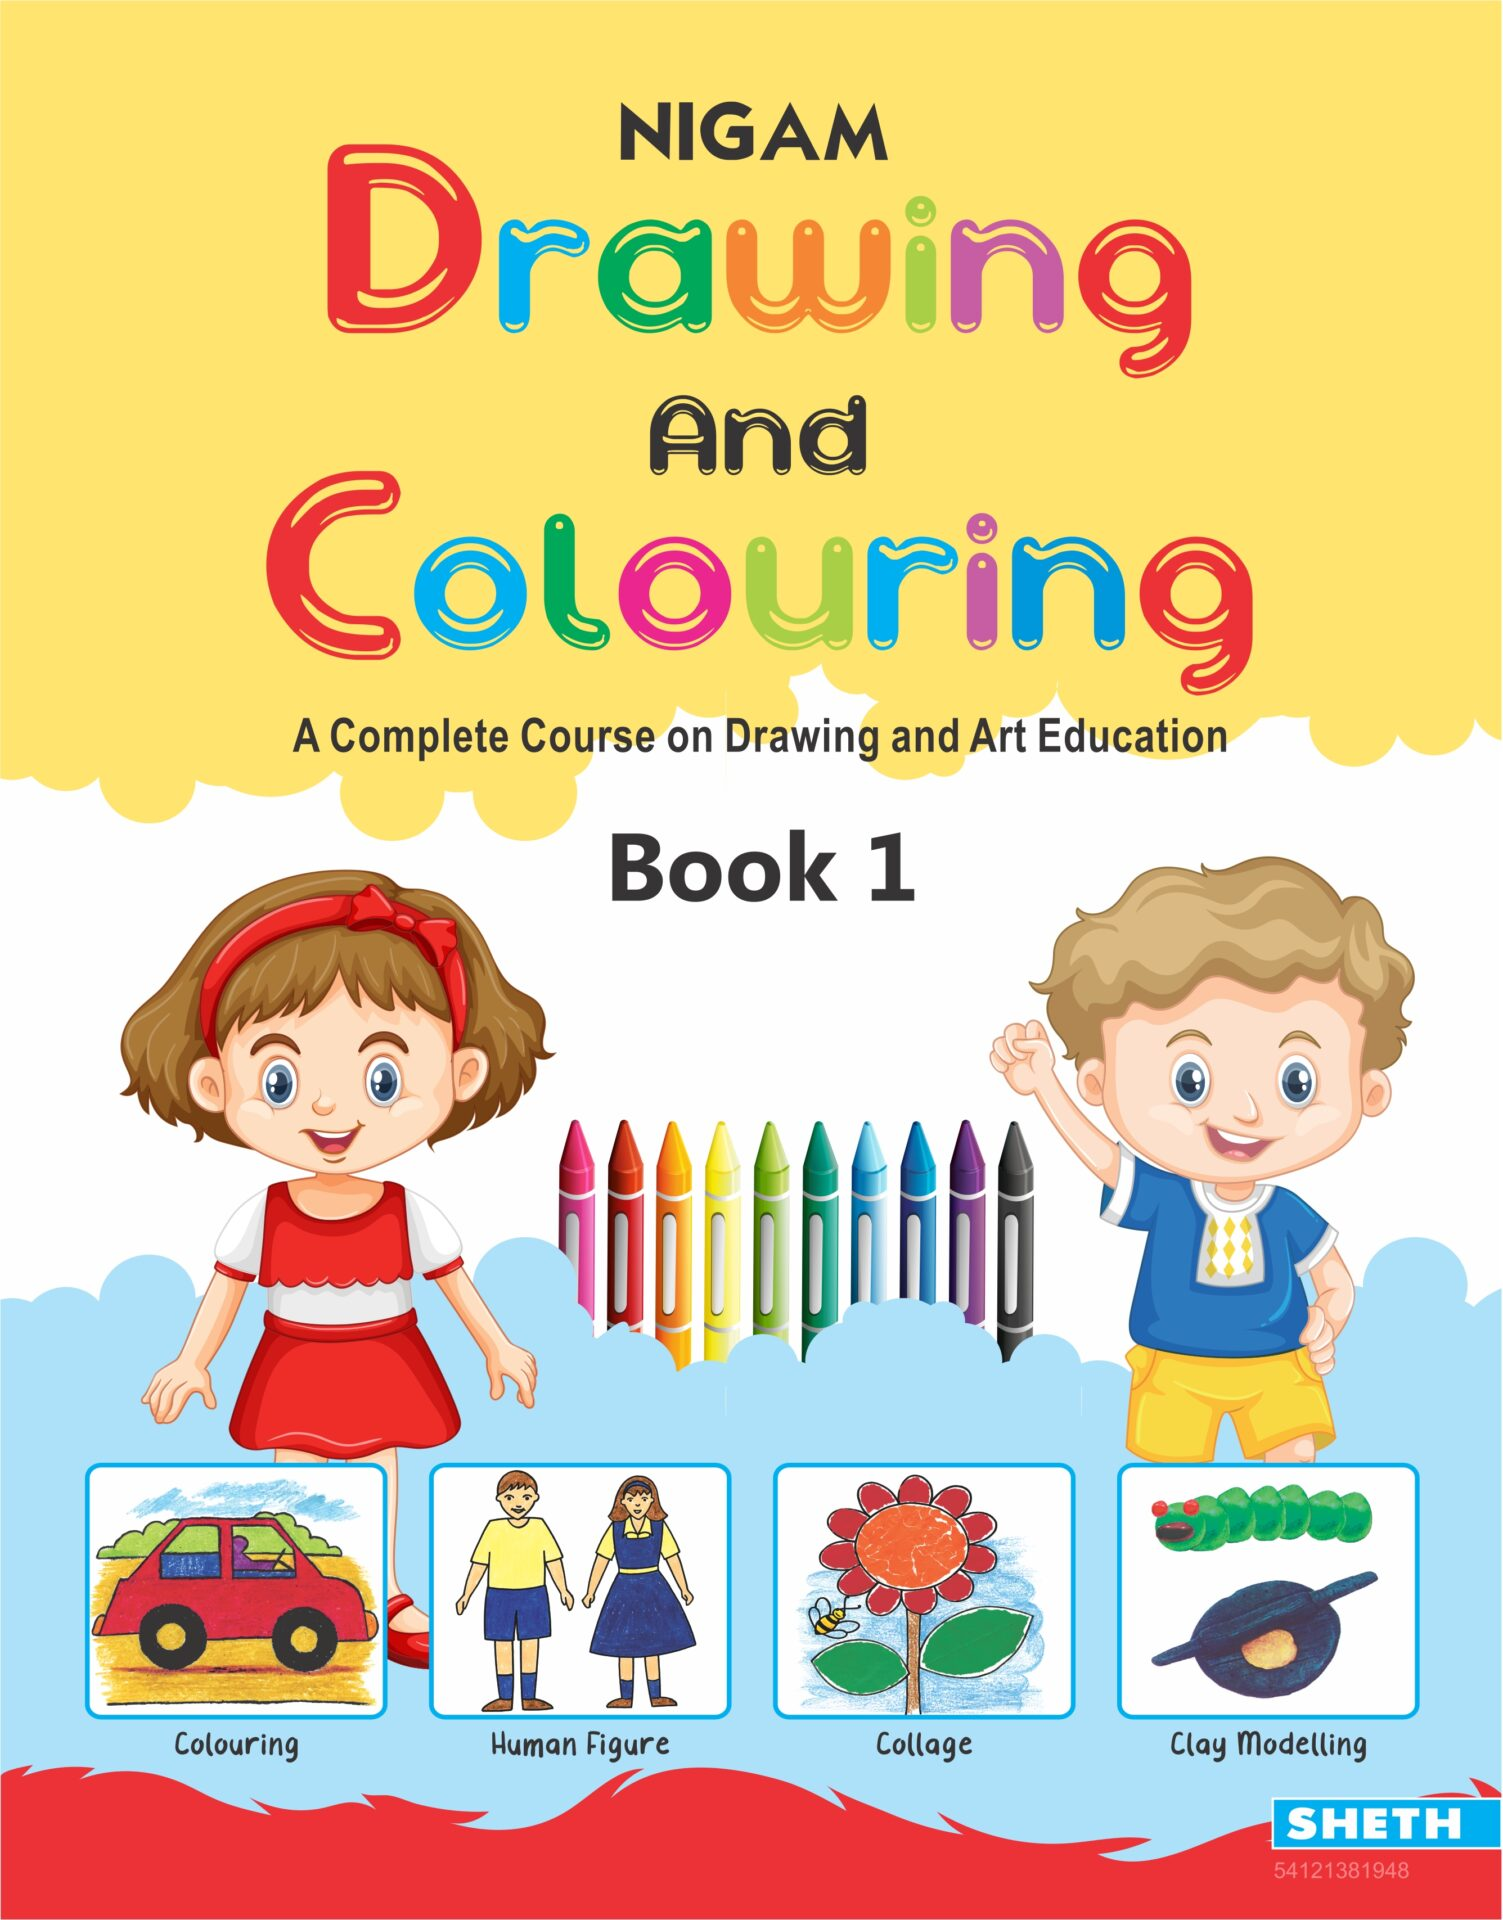 Nigam Drawing and Colouring Book 1 1